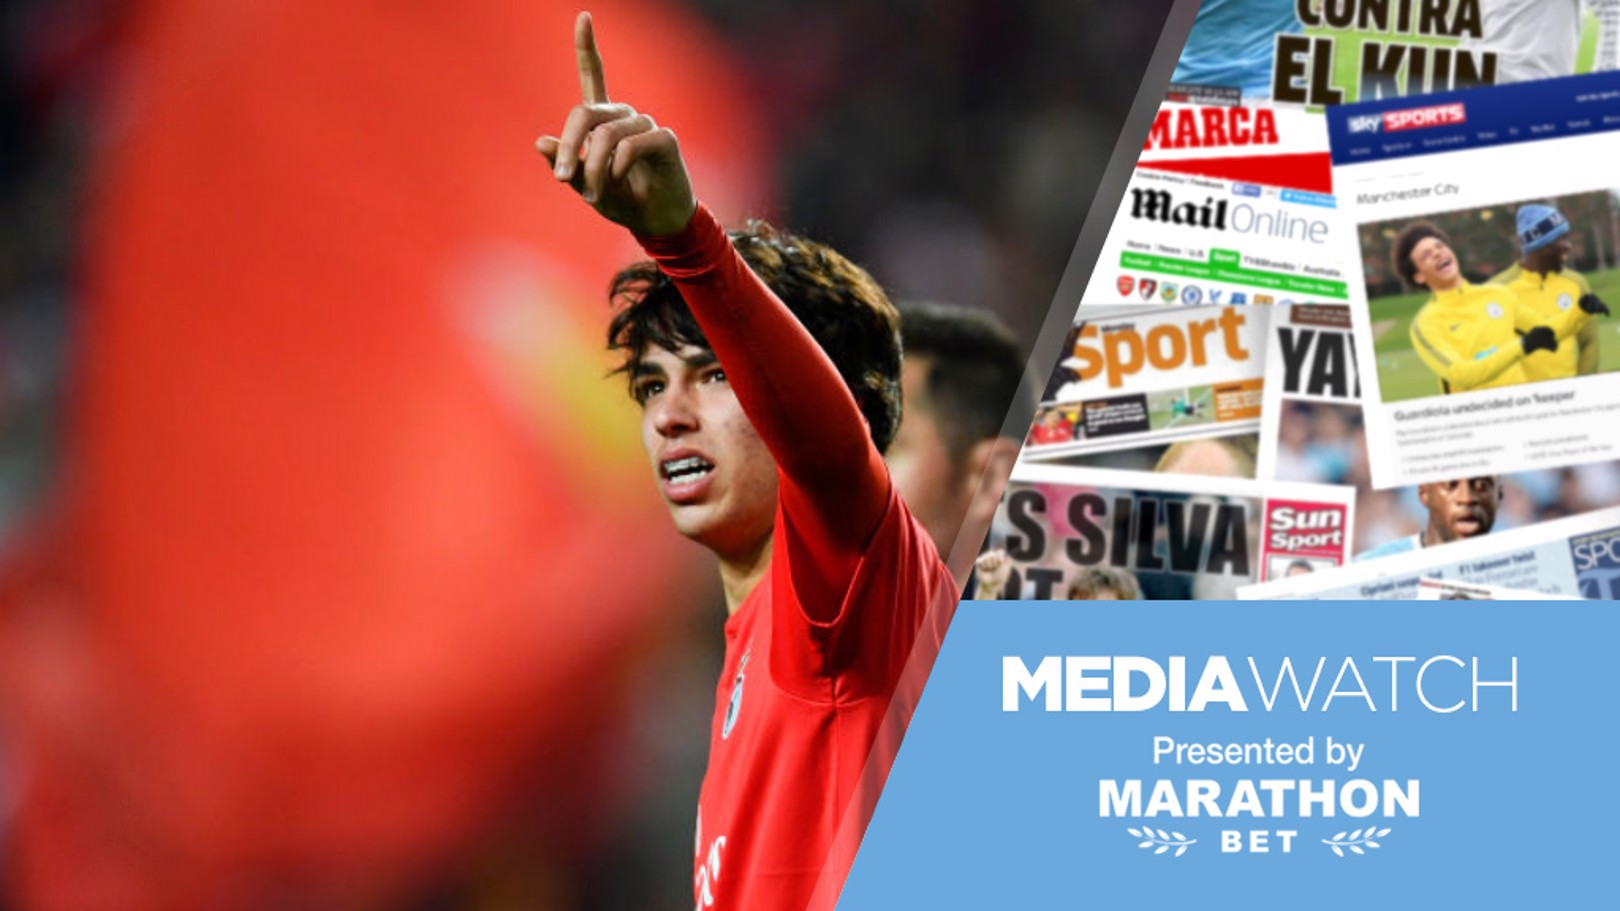 RUMOUR MILL: Joao Felix continues to be linked with a move to City.